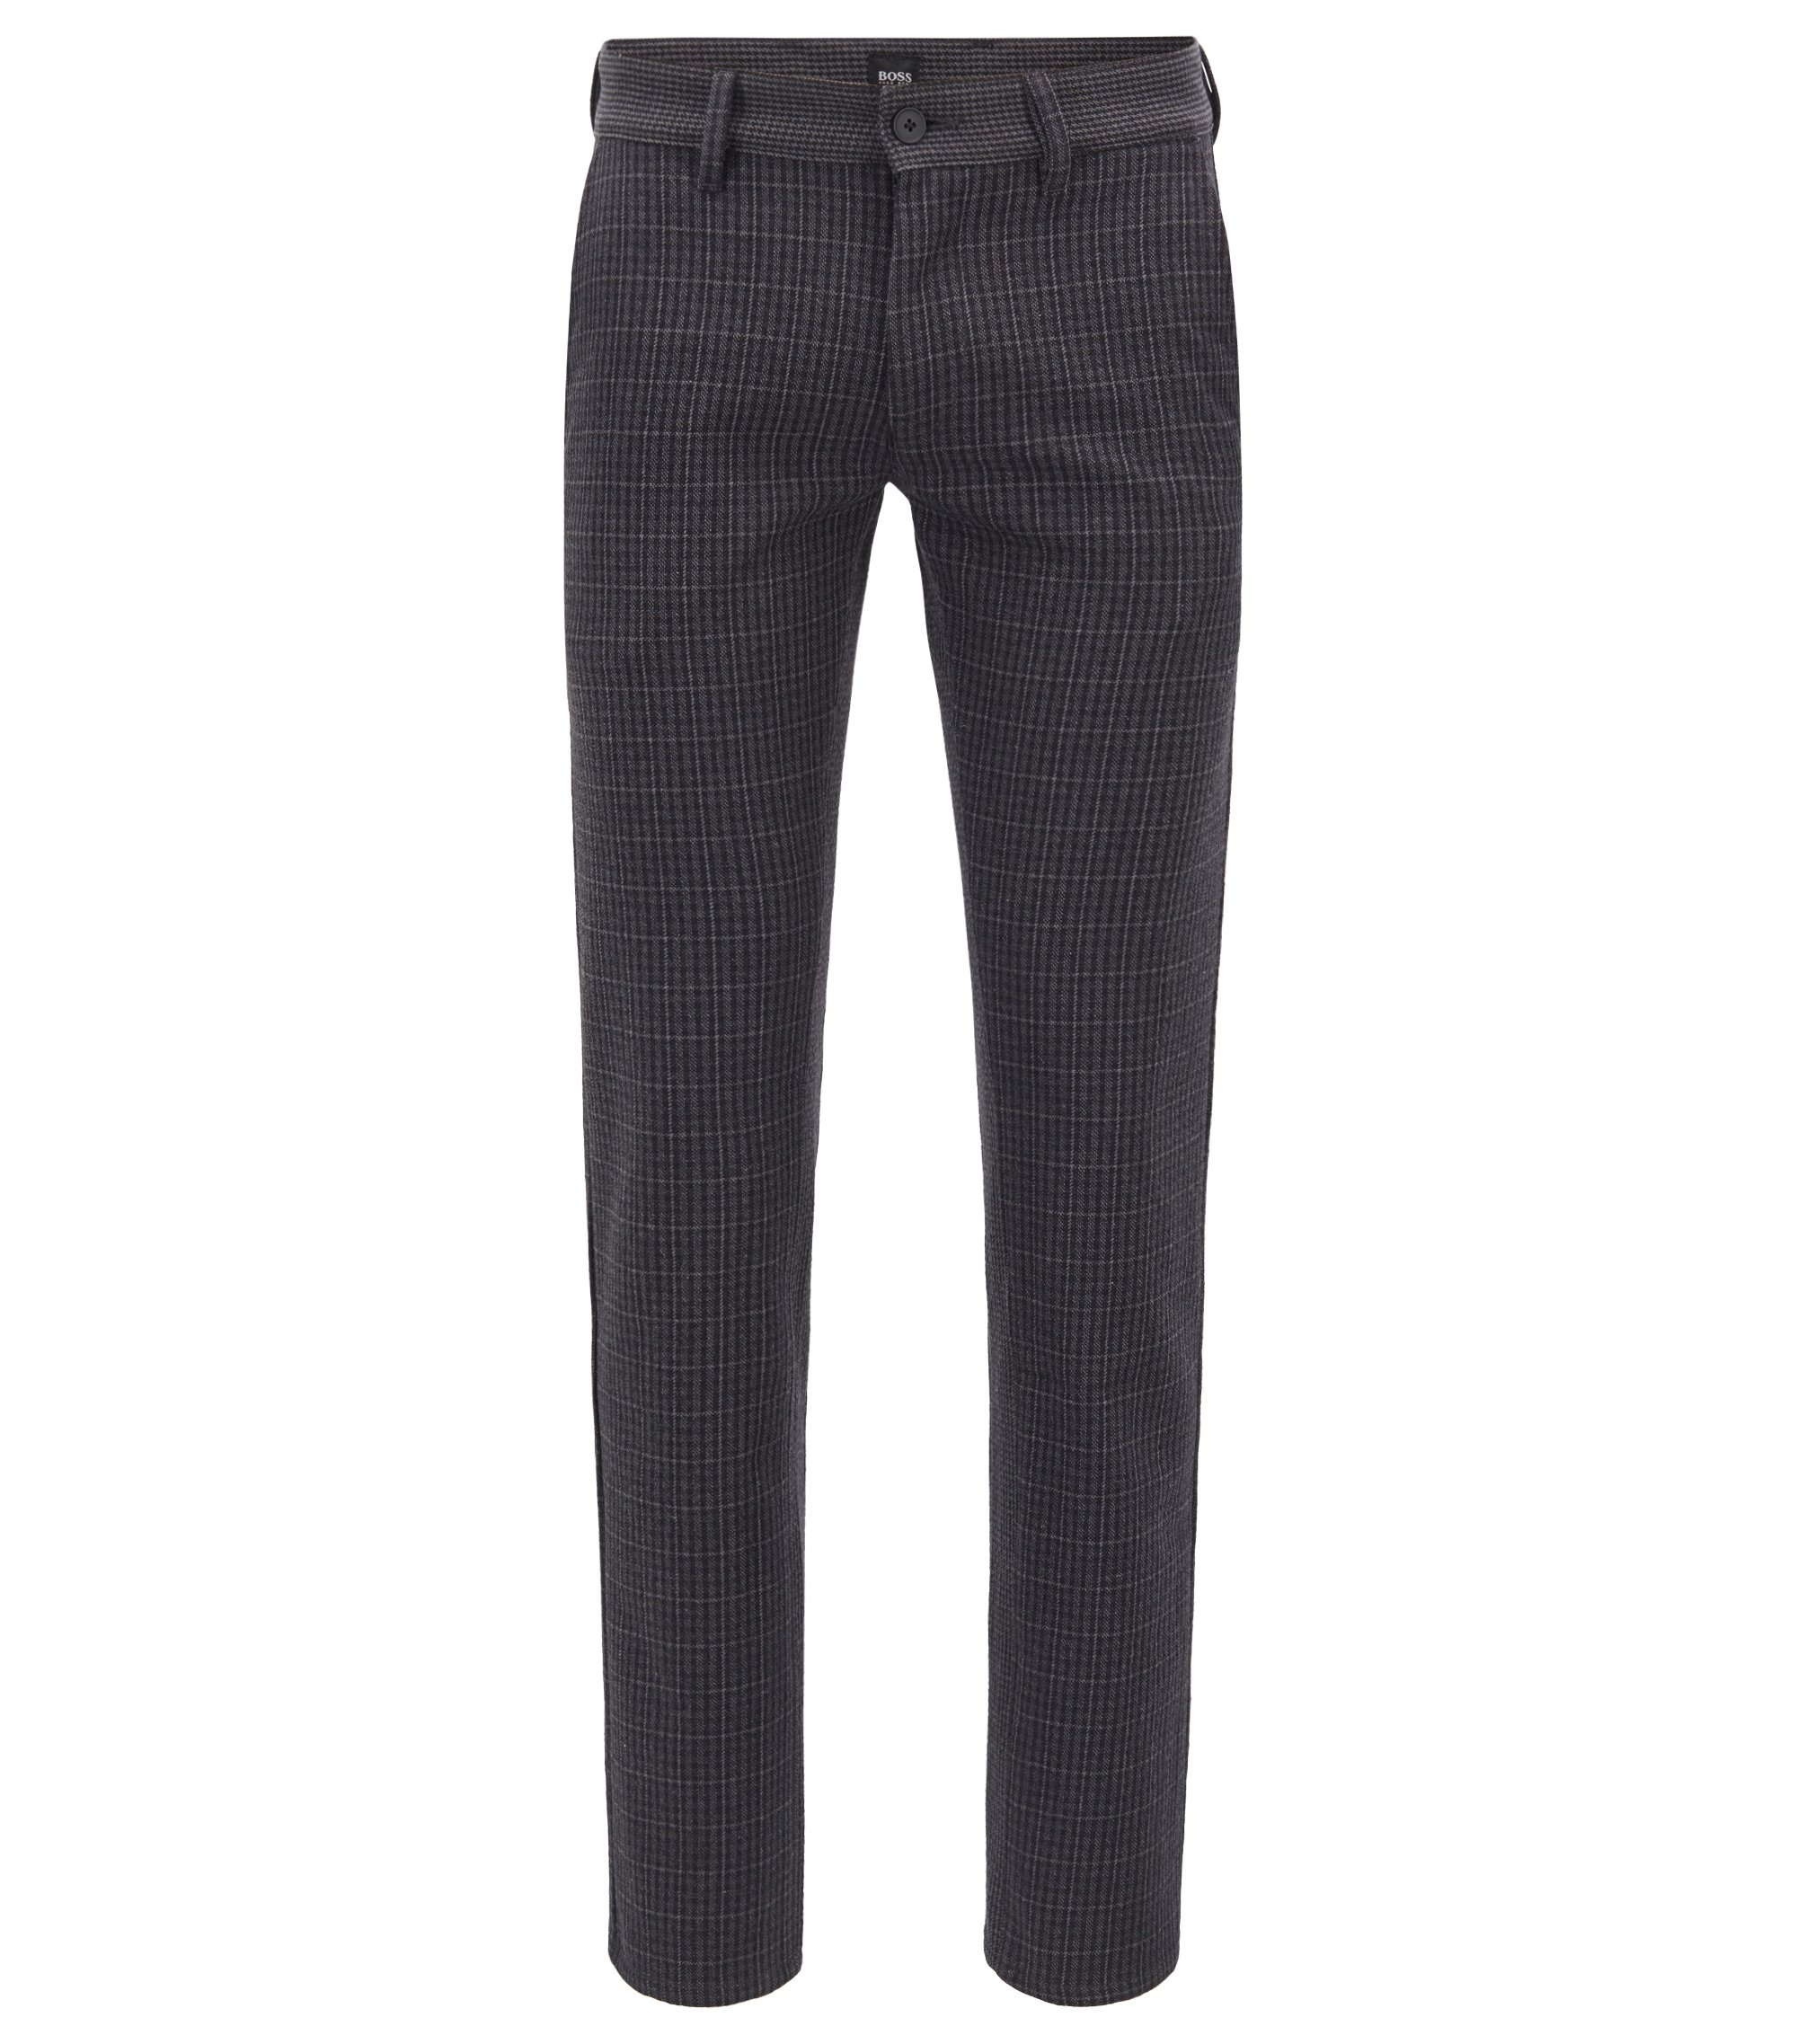 Slim-fit mix-checked trousers in an Italian cotton blend, Black